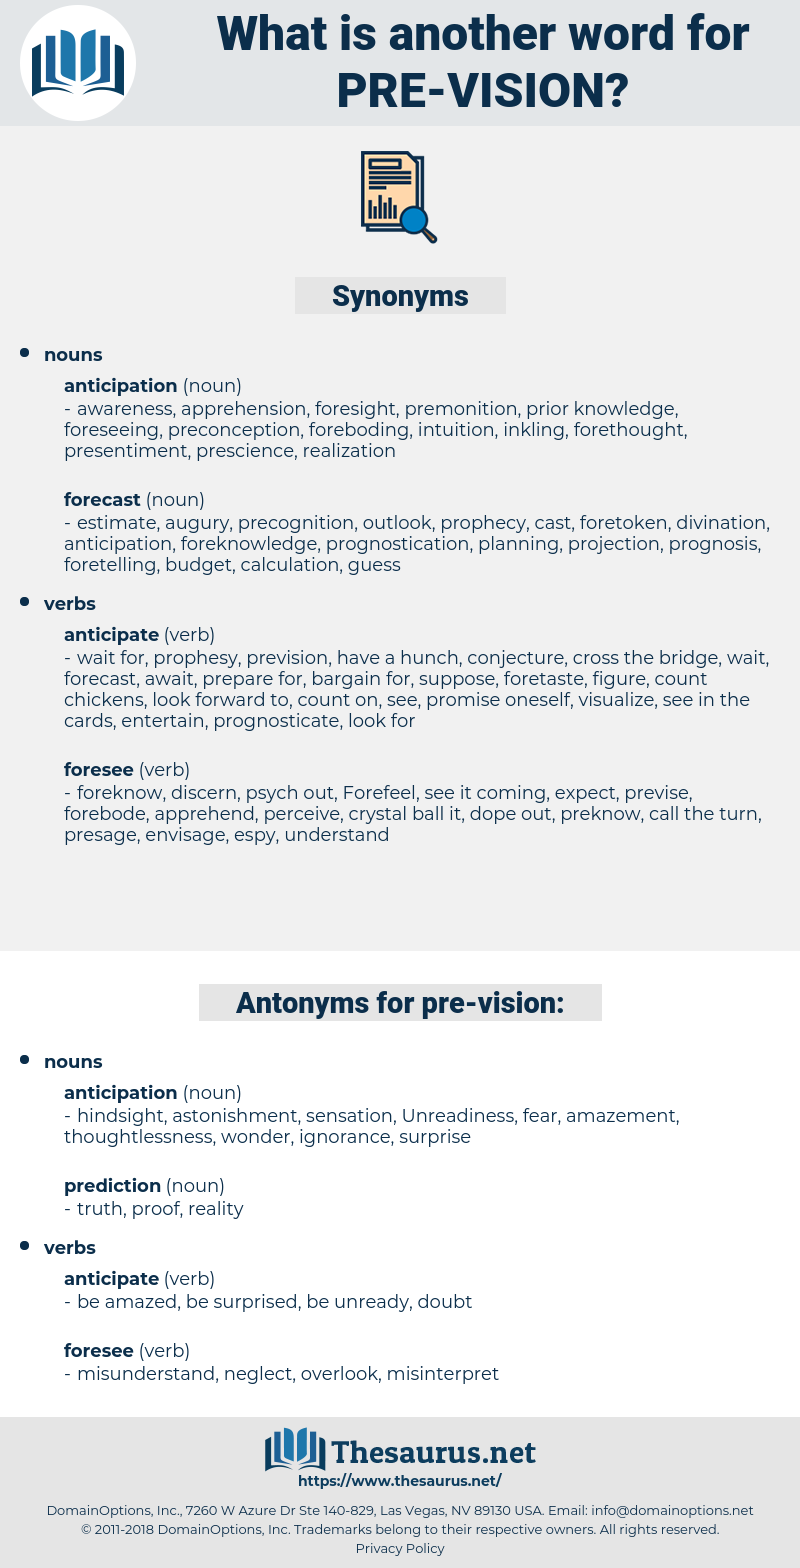 pre-vision, synonym pre-vision, another word for pre-vision, words like pre-vision, thesaurus pre-vision